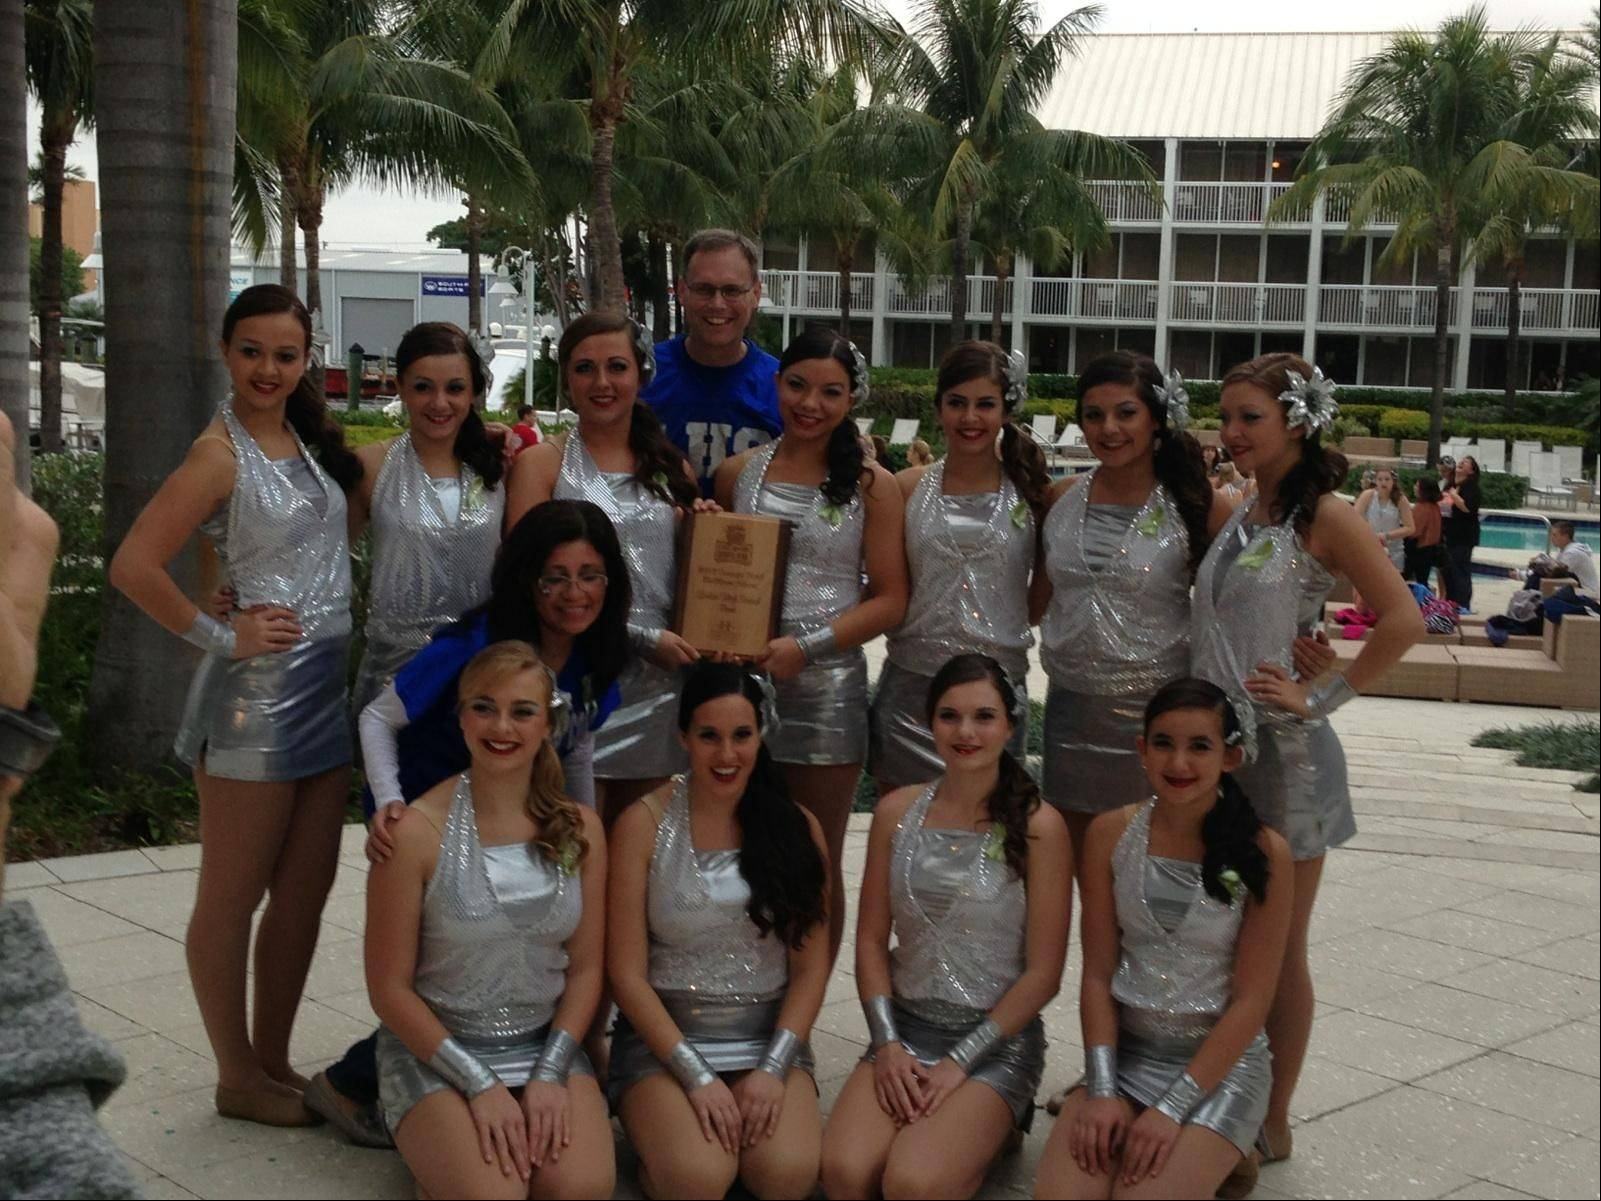 Larkin High School Poms with Principal, Dr. Jon Tuin before the Orange Bowl Tuesday January 1, 2013.